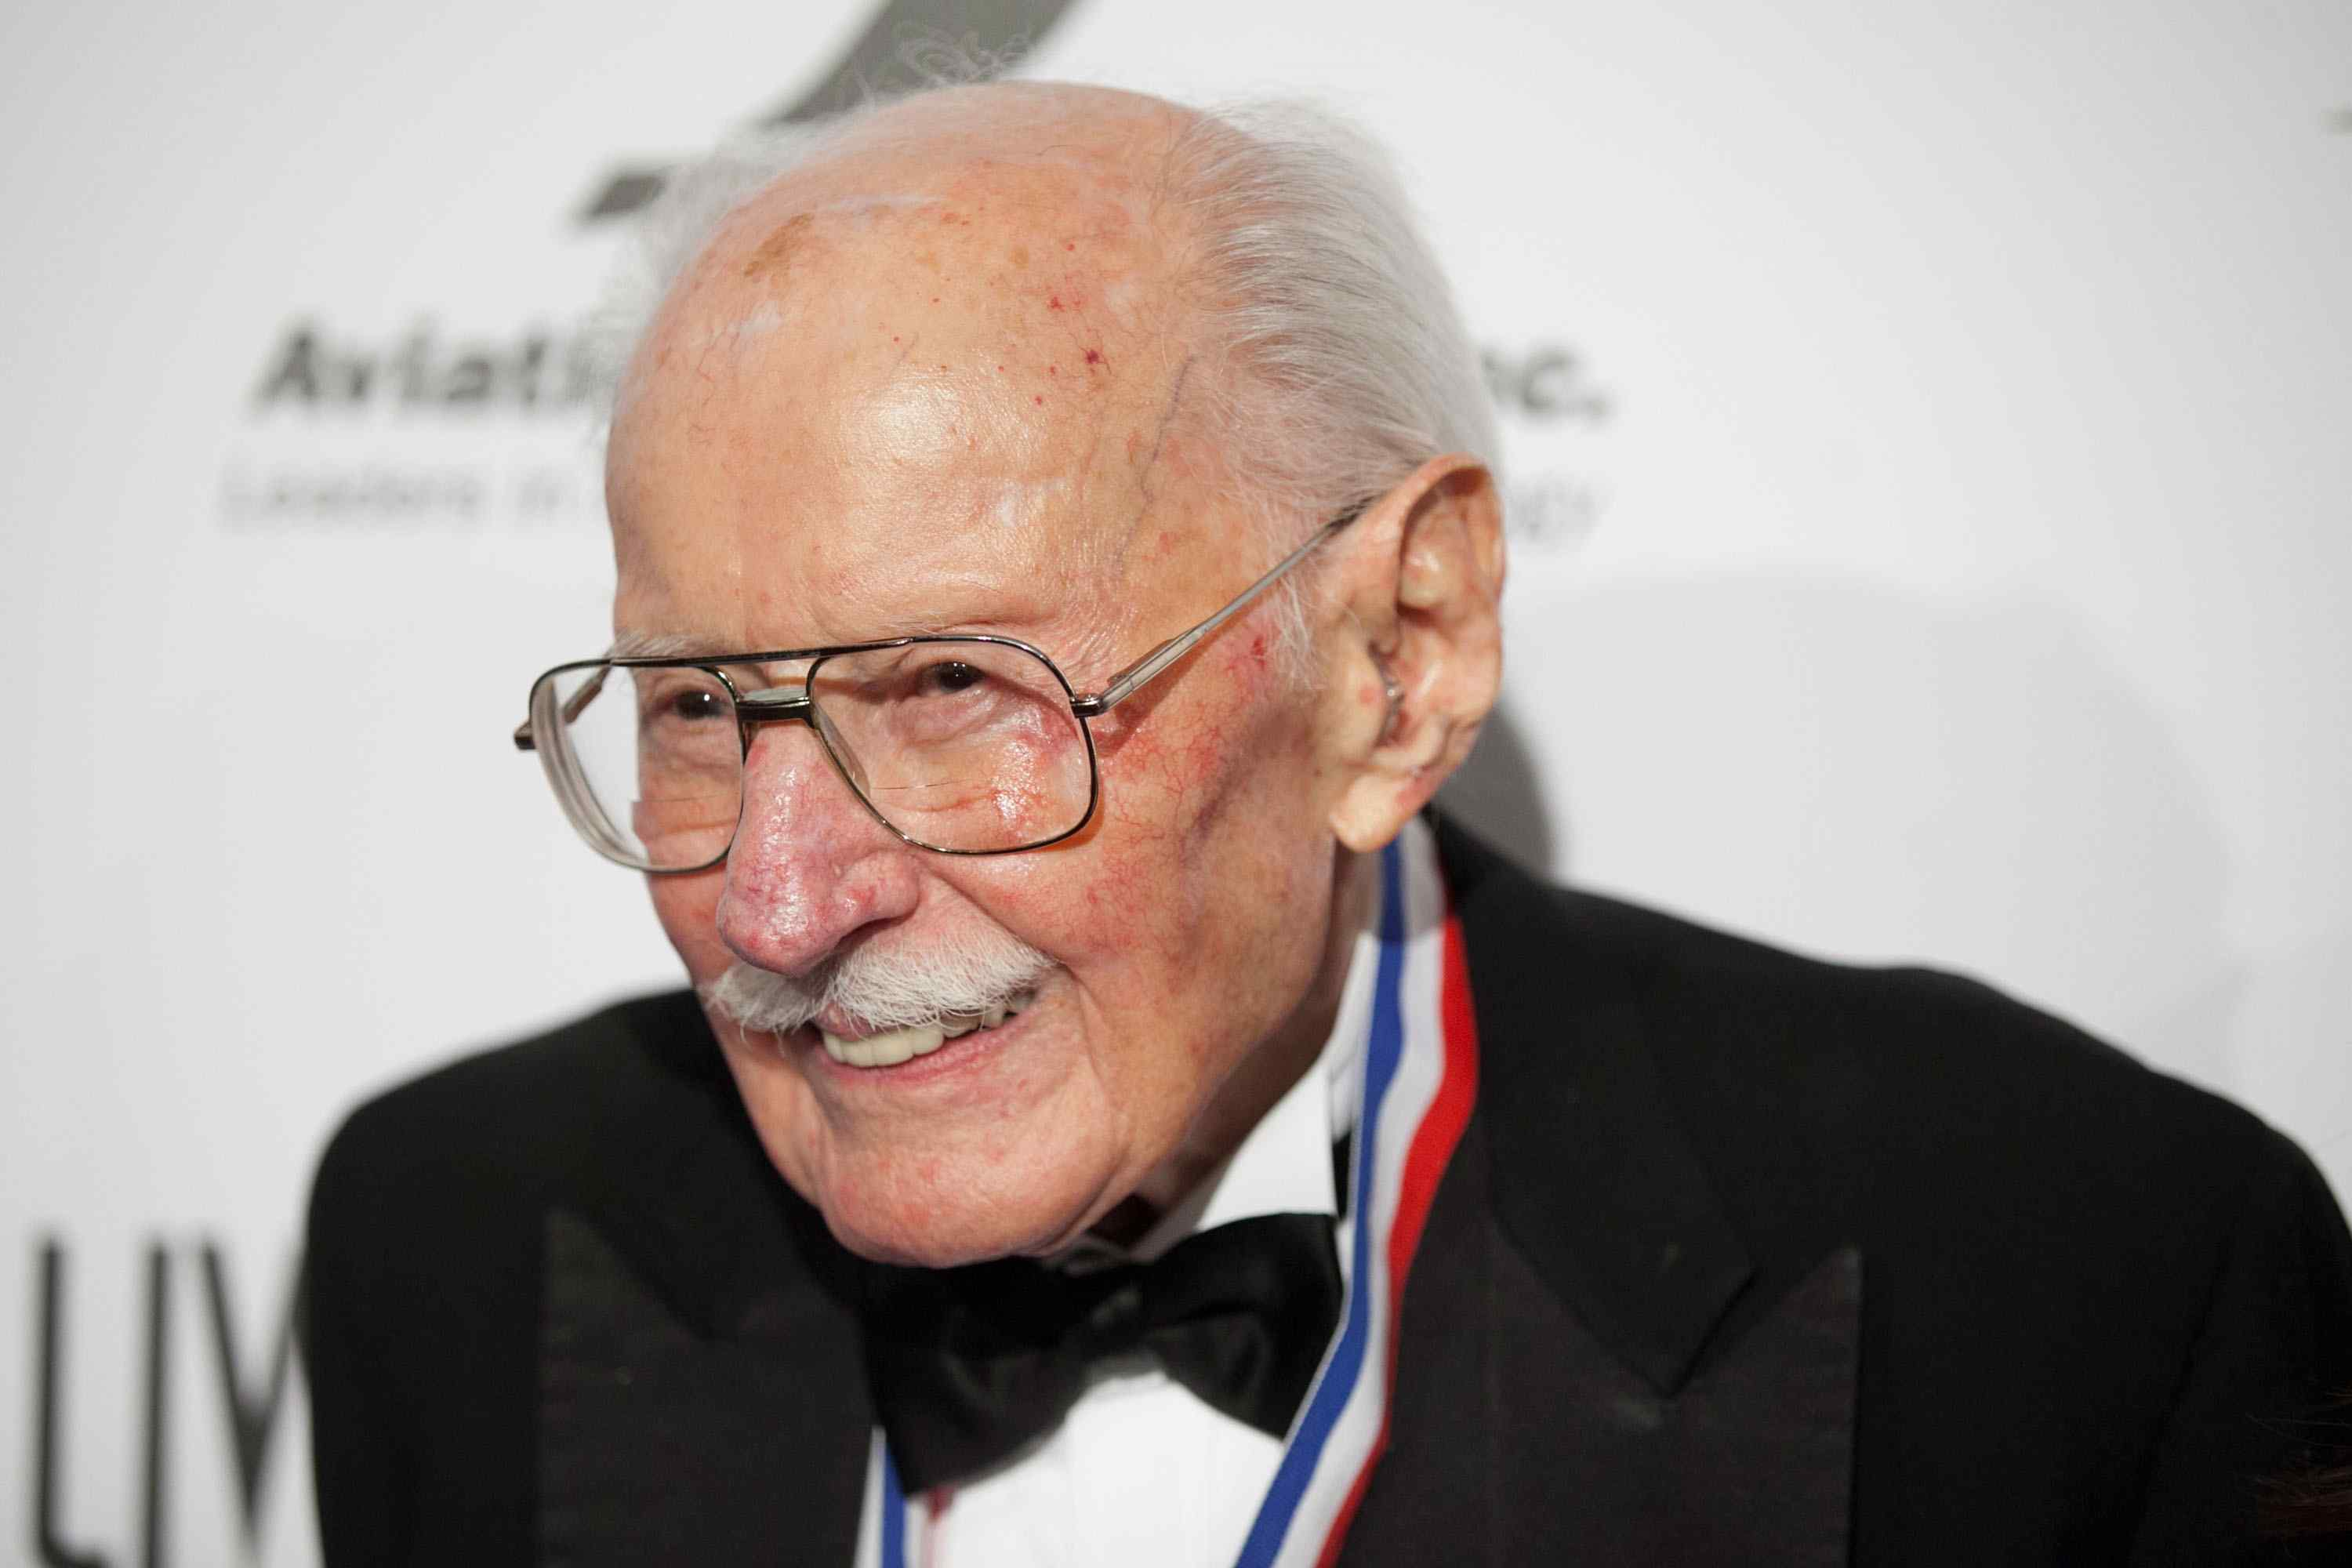 Bob Hoover arrives for the 11th Annual Living Legends Of Aviation Awards in Beverly Hills, California. 2014 file photo. (Photo by Gabriel Olsen/Getty Images)